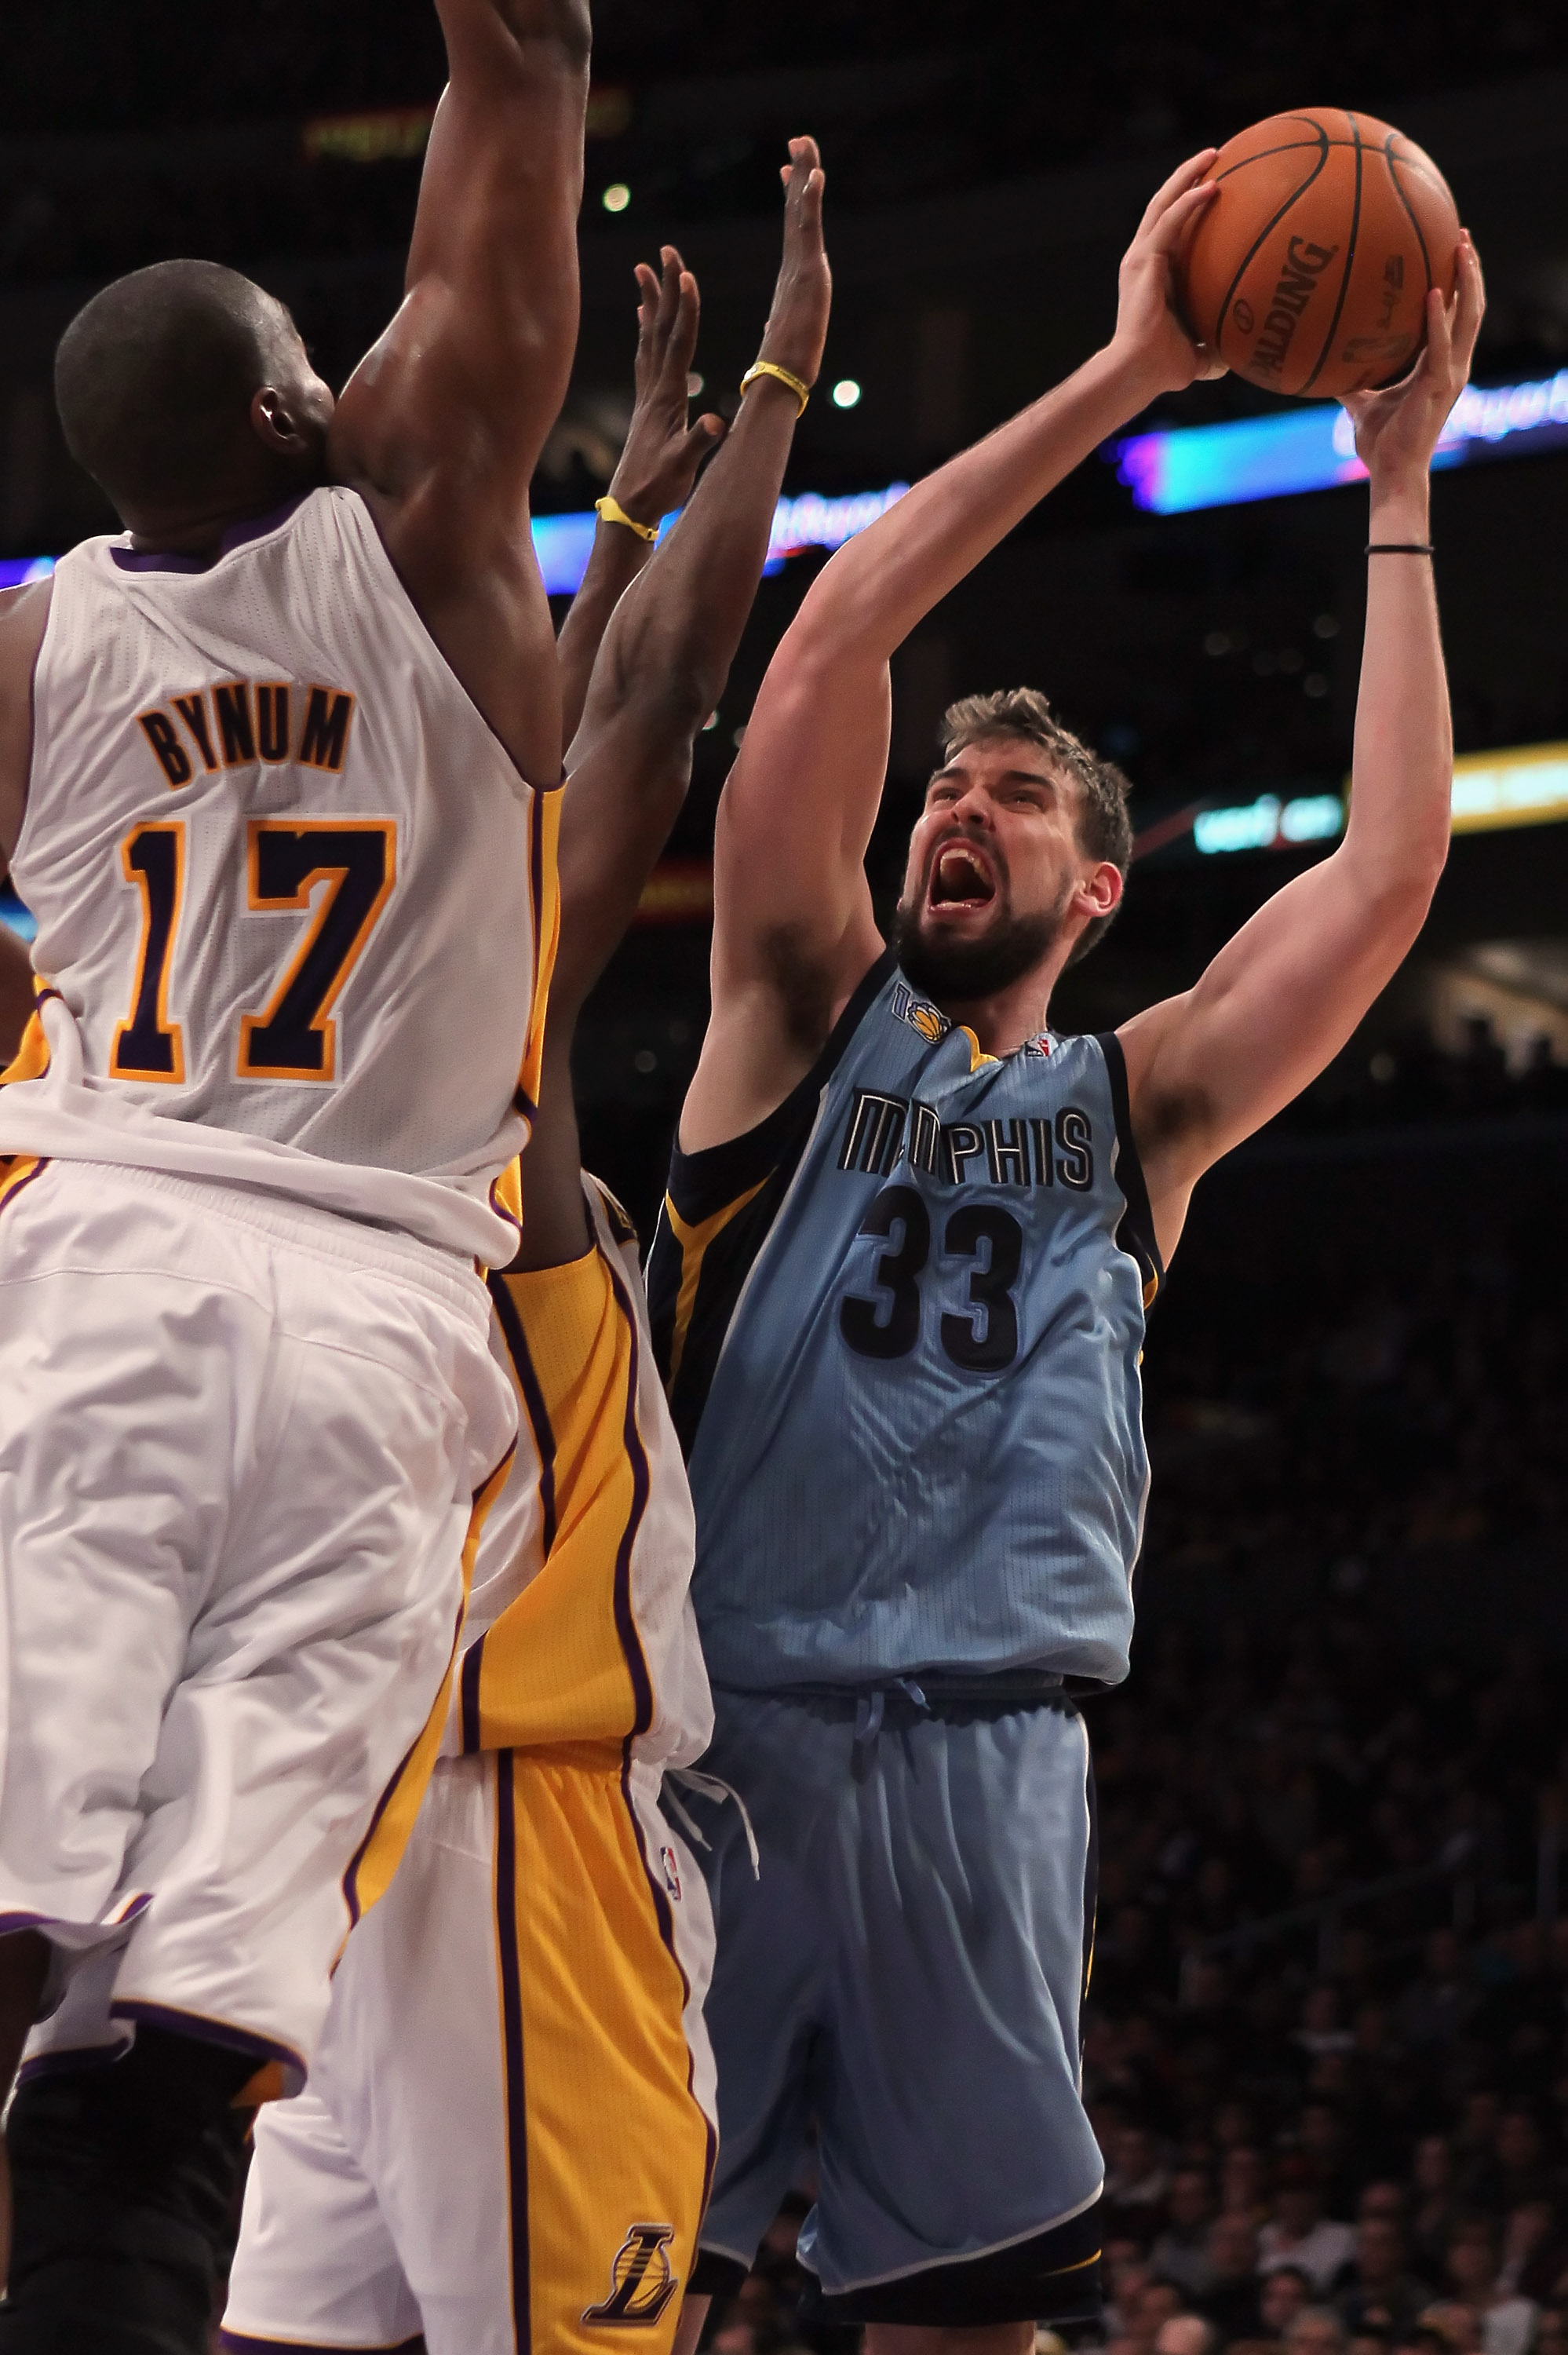 LOS ANGELES, CA - JANUARY 02:  Marc Gasol #33 of the Memphis Grizzlies drives to the basket while being defended by Andrew Bynum #17 of the Los Angeles Lakers during the first half at Staples Center on January 2, 2011 in Los Angeles, California. The Grizz